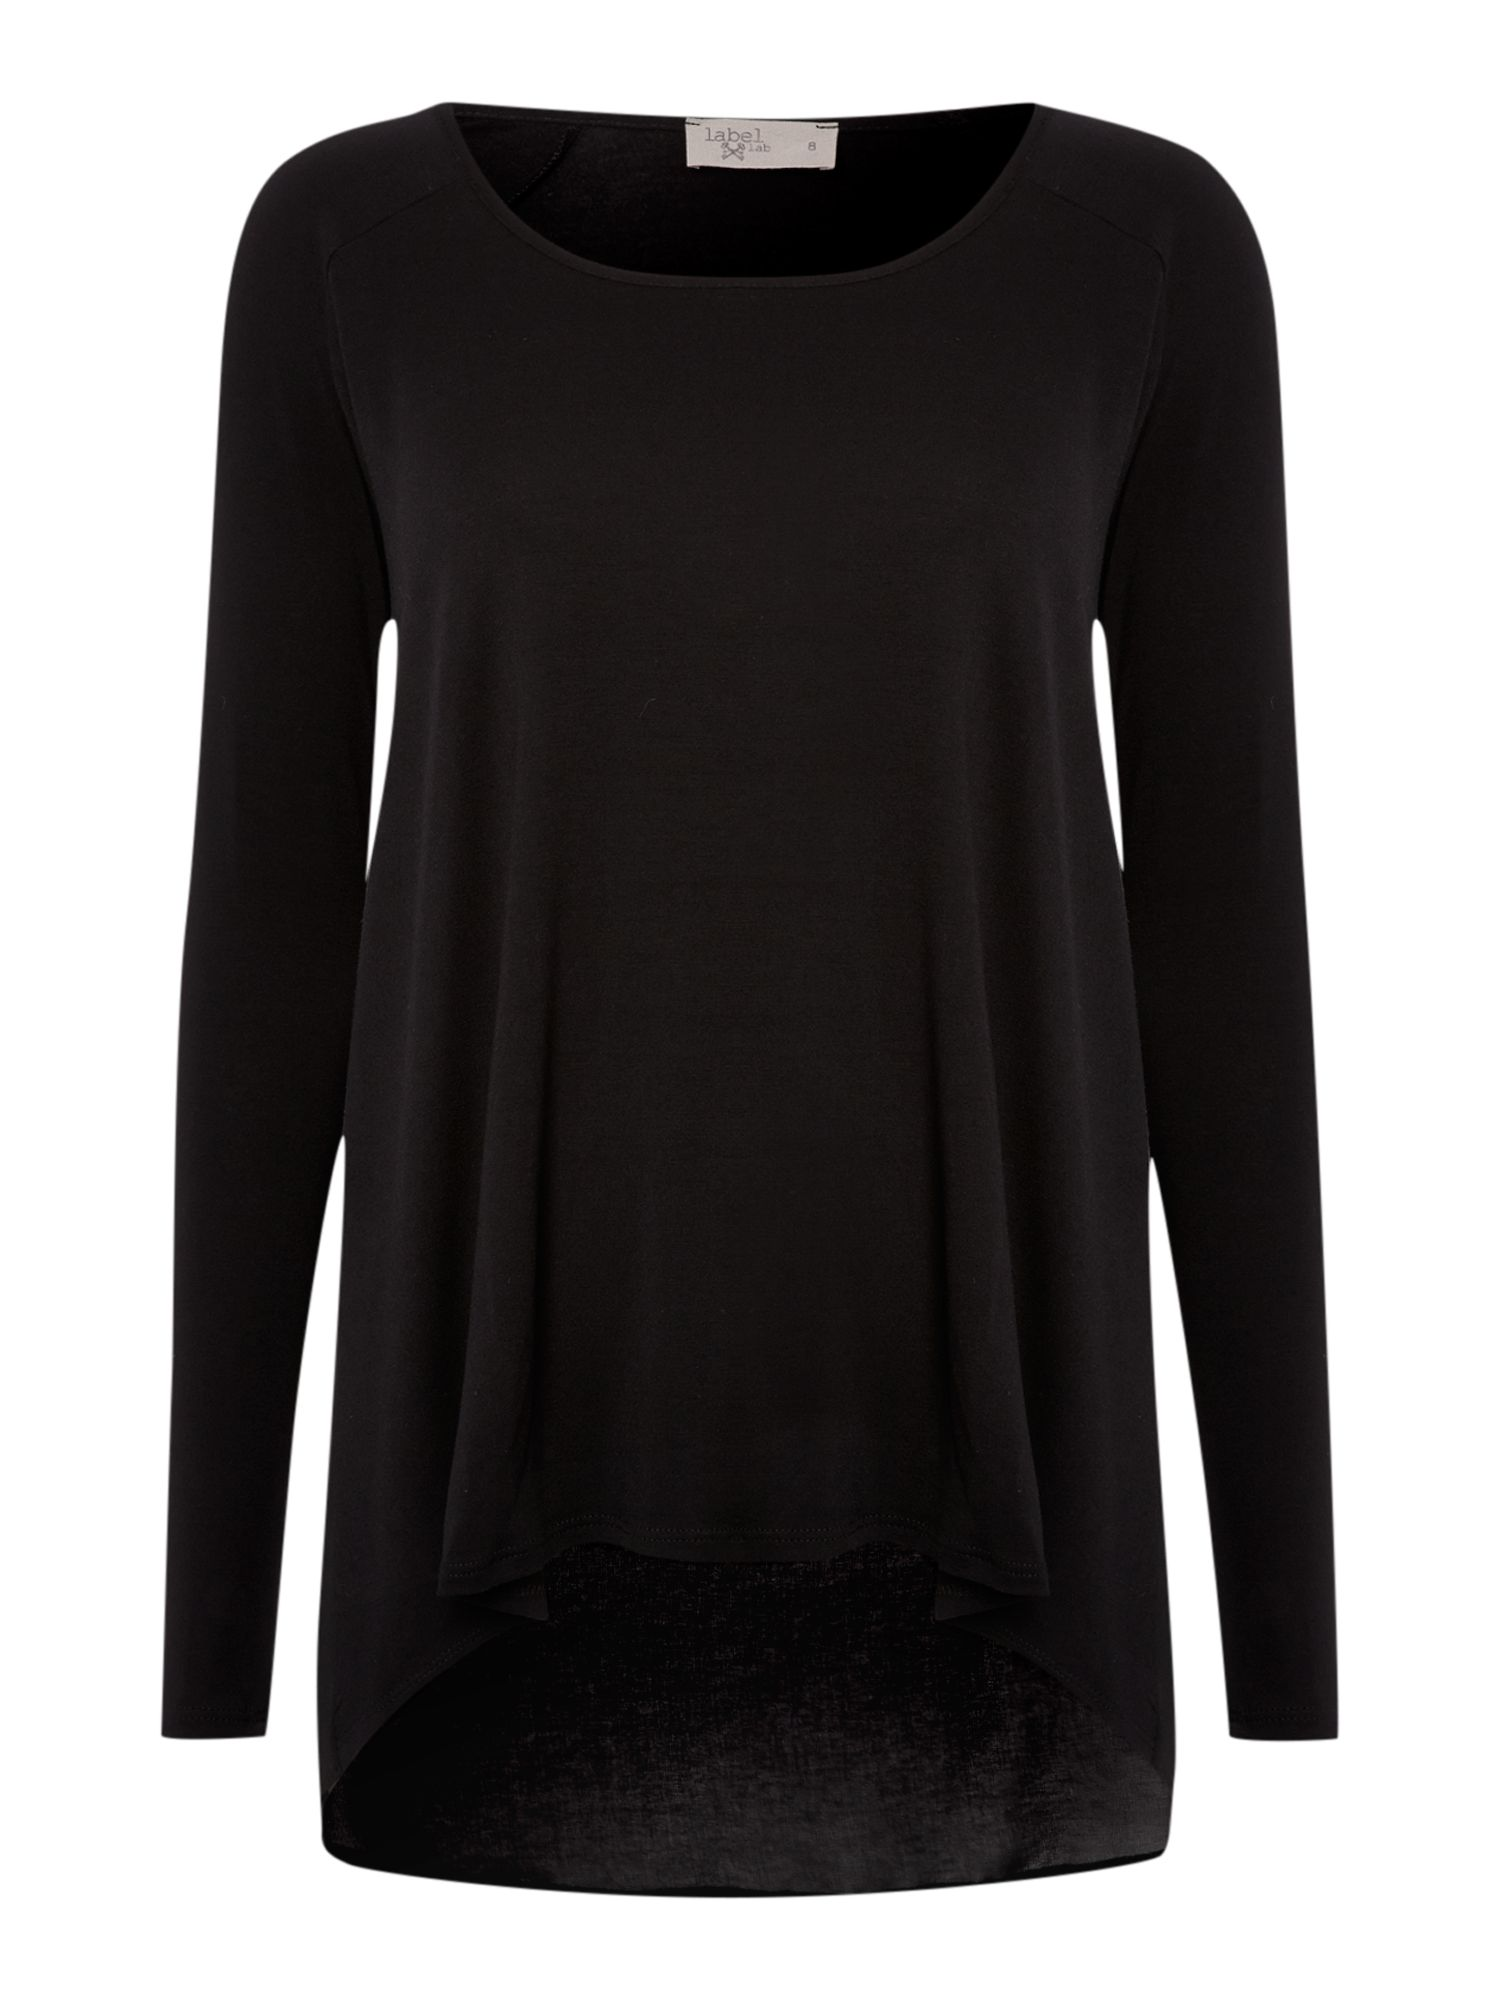 Chiffon back long sleeve top